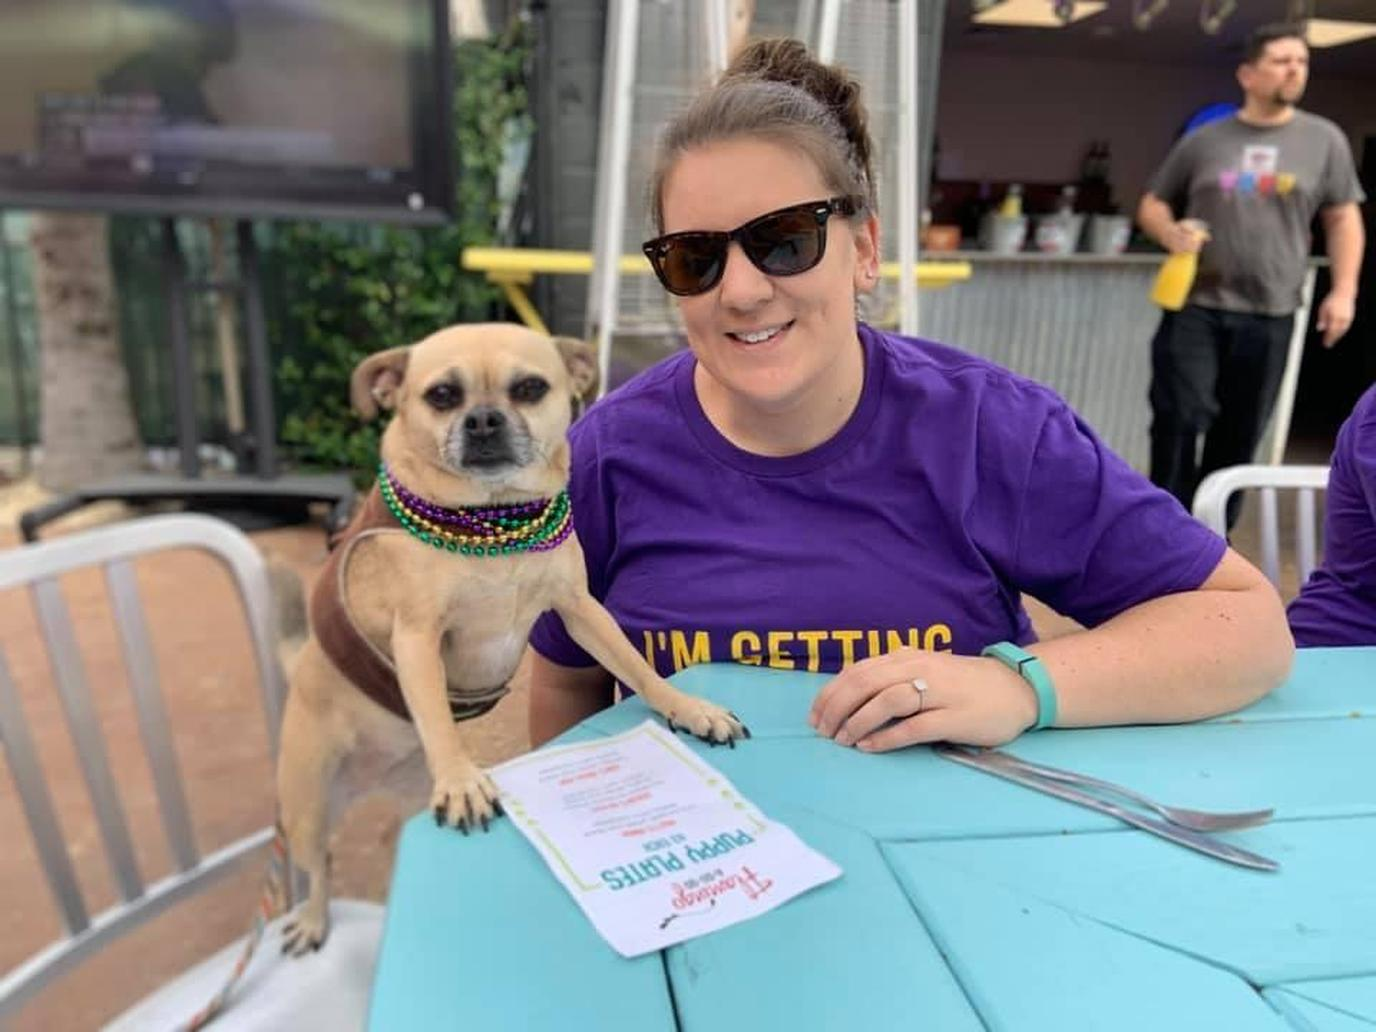 A Woman and a Dog Sit on the Dog-Friendly Patio of Flamingo A-Go-Go in Pet-Friendly New Orleans.